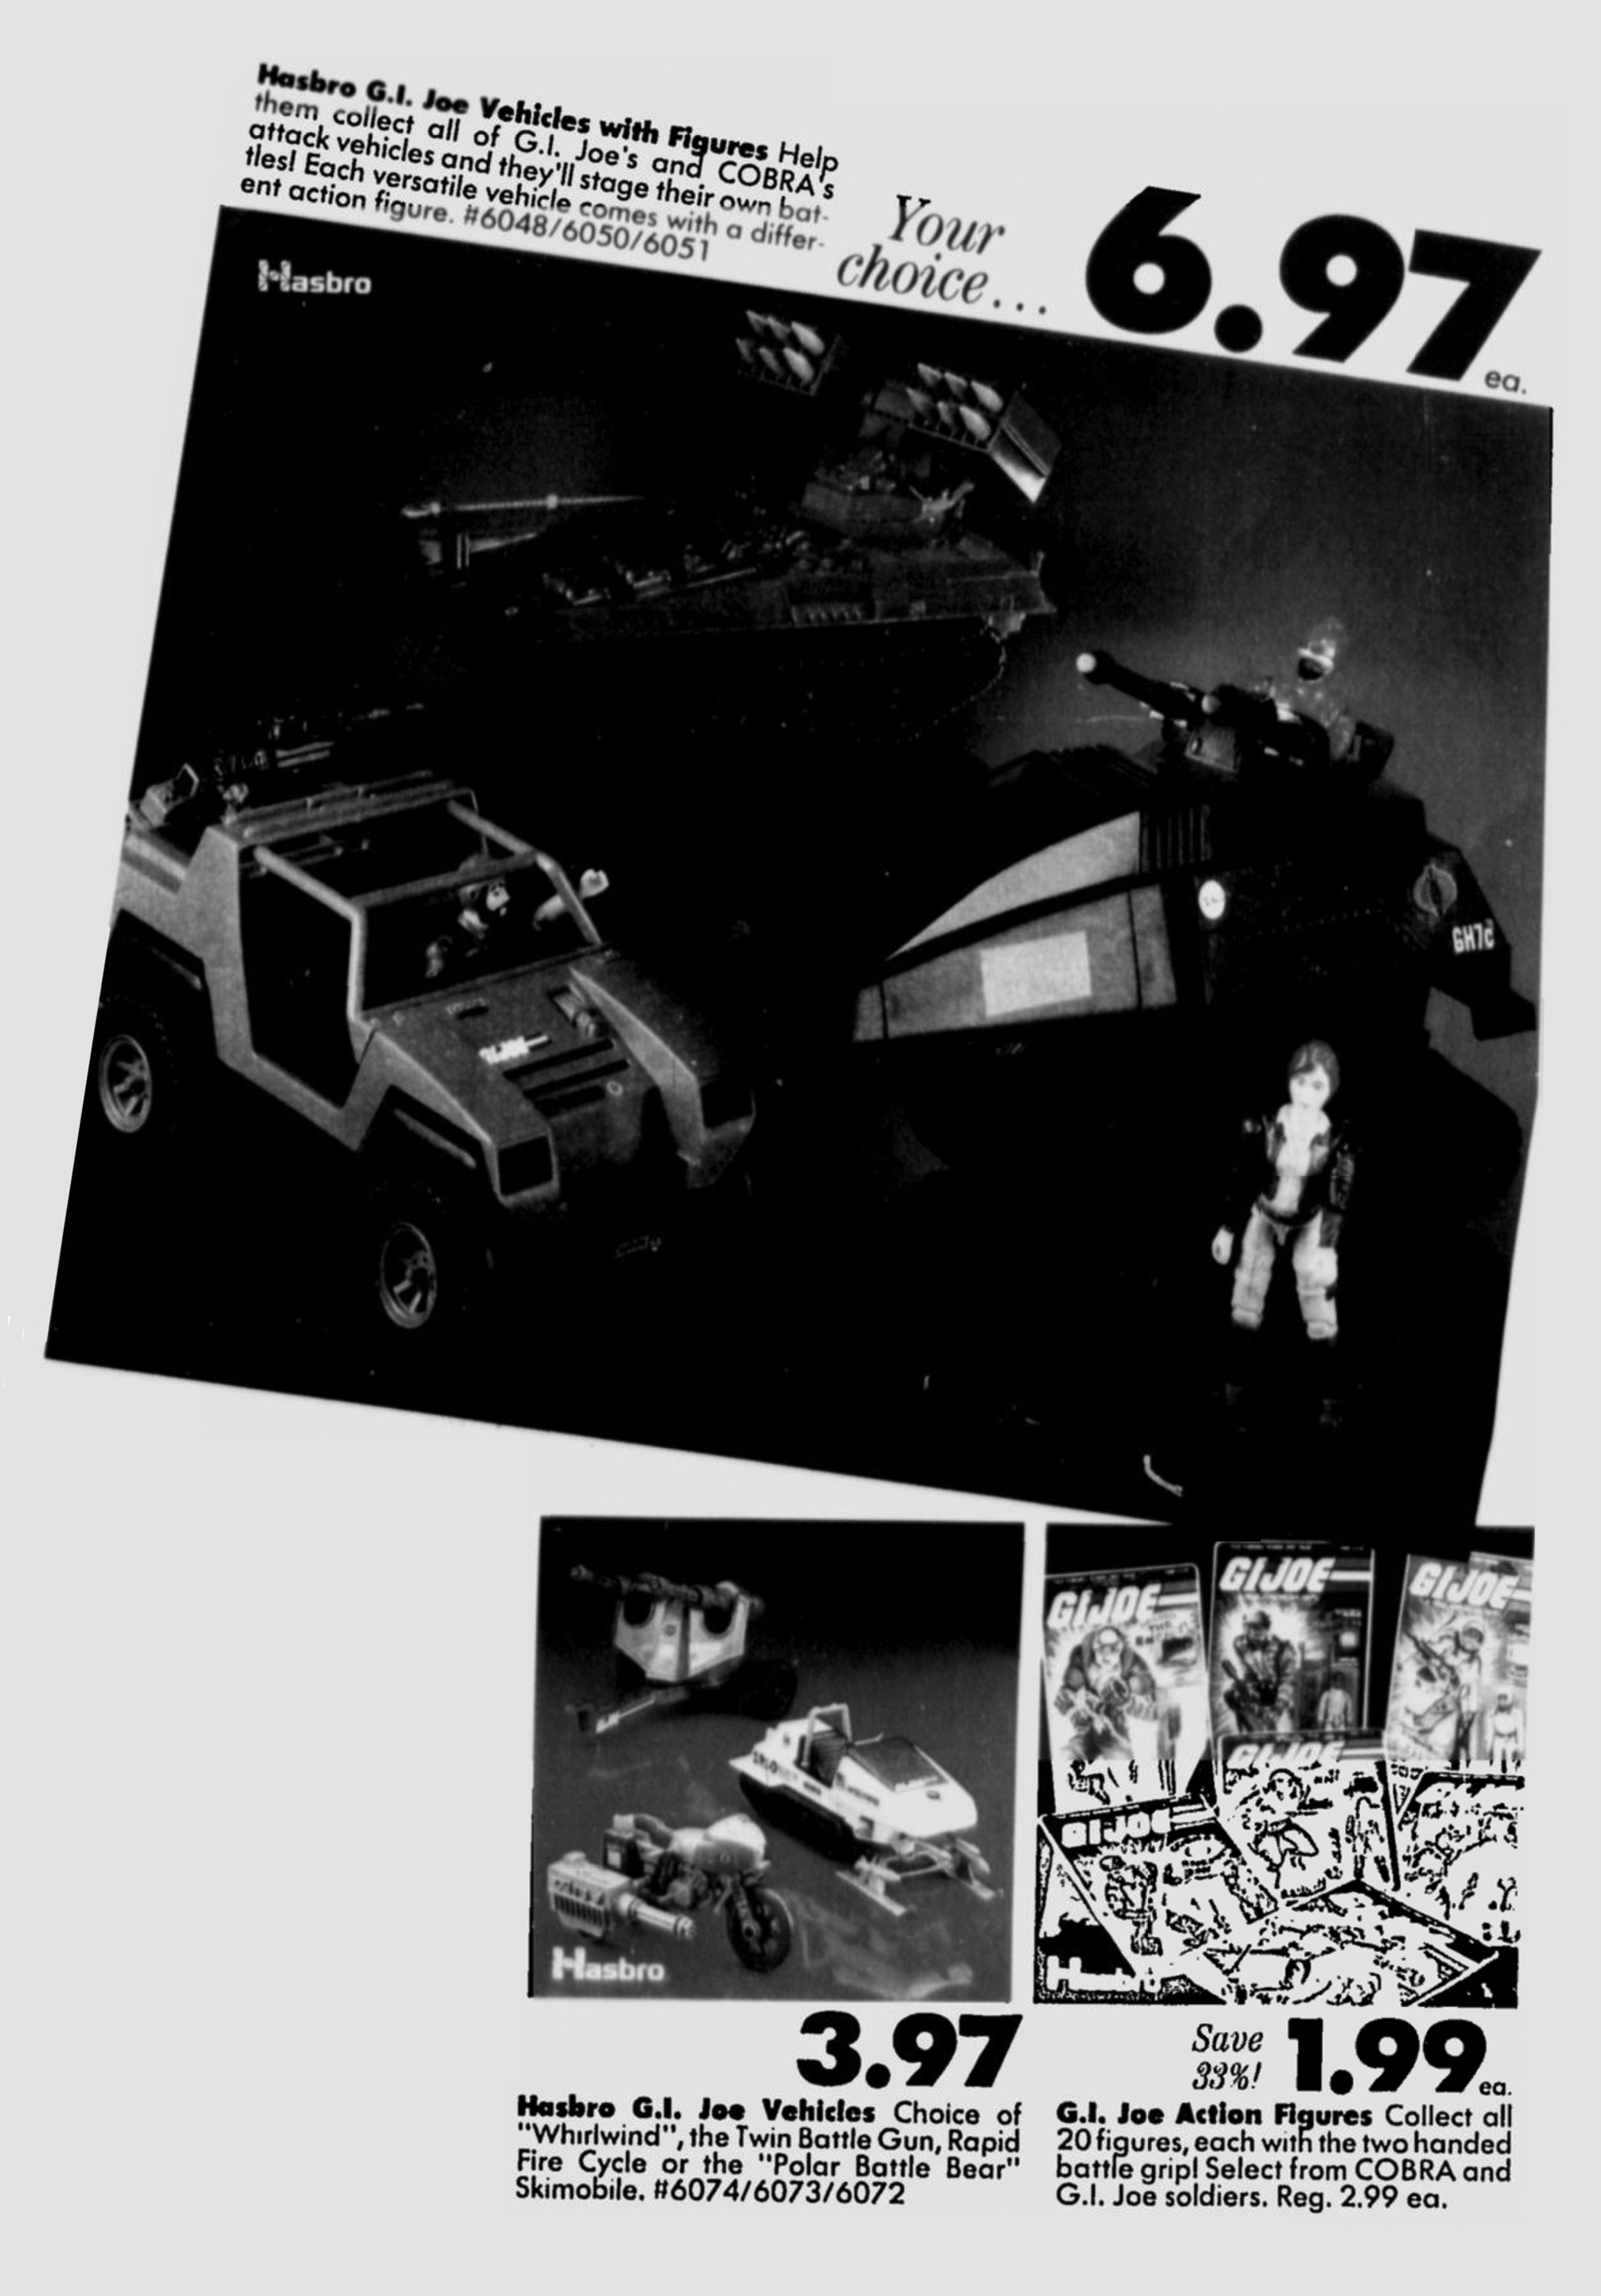 Hasbro\'s G.I. Joe Action Figures and Vehicles on Sale in 1983